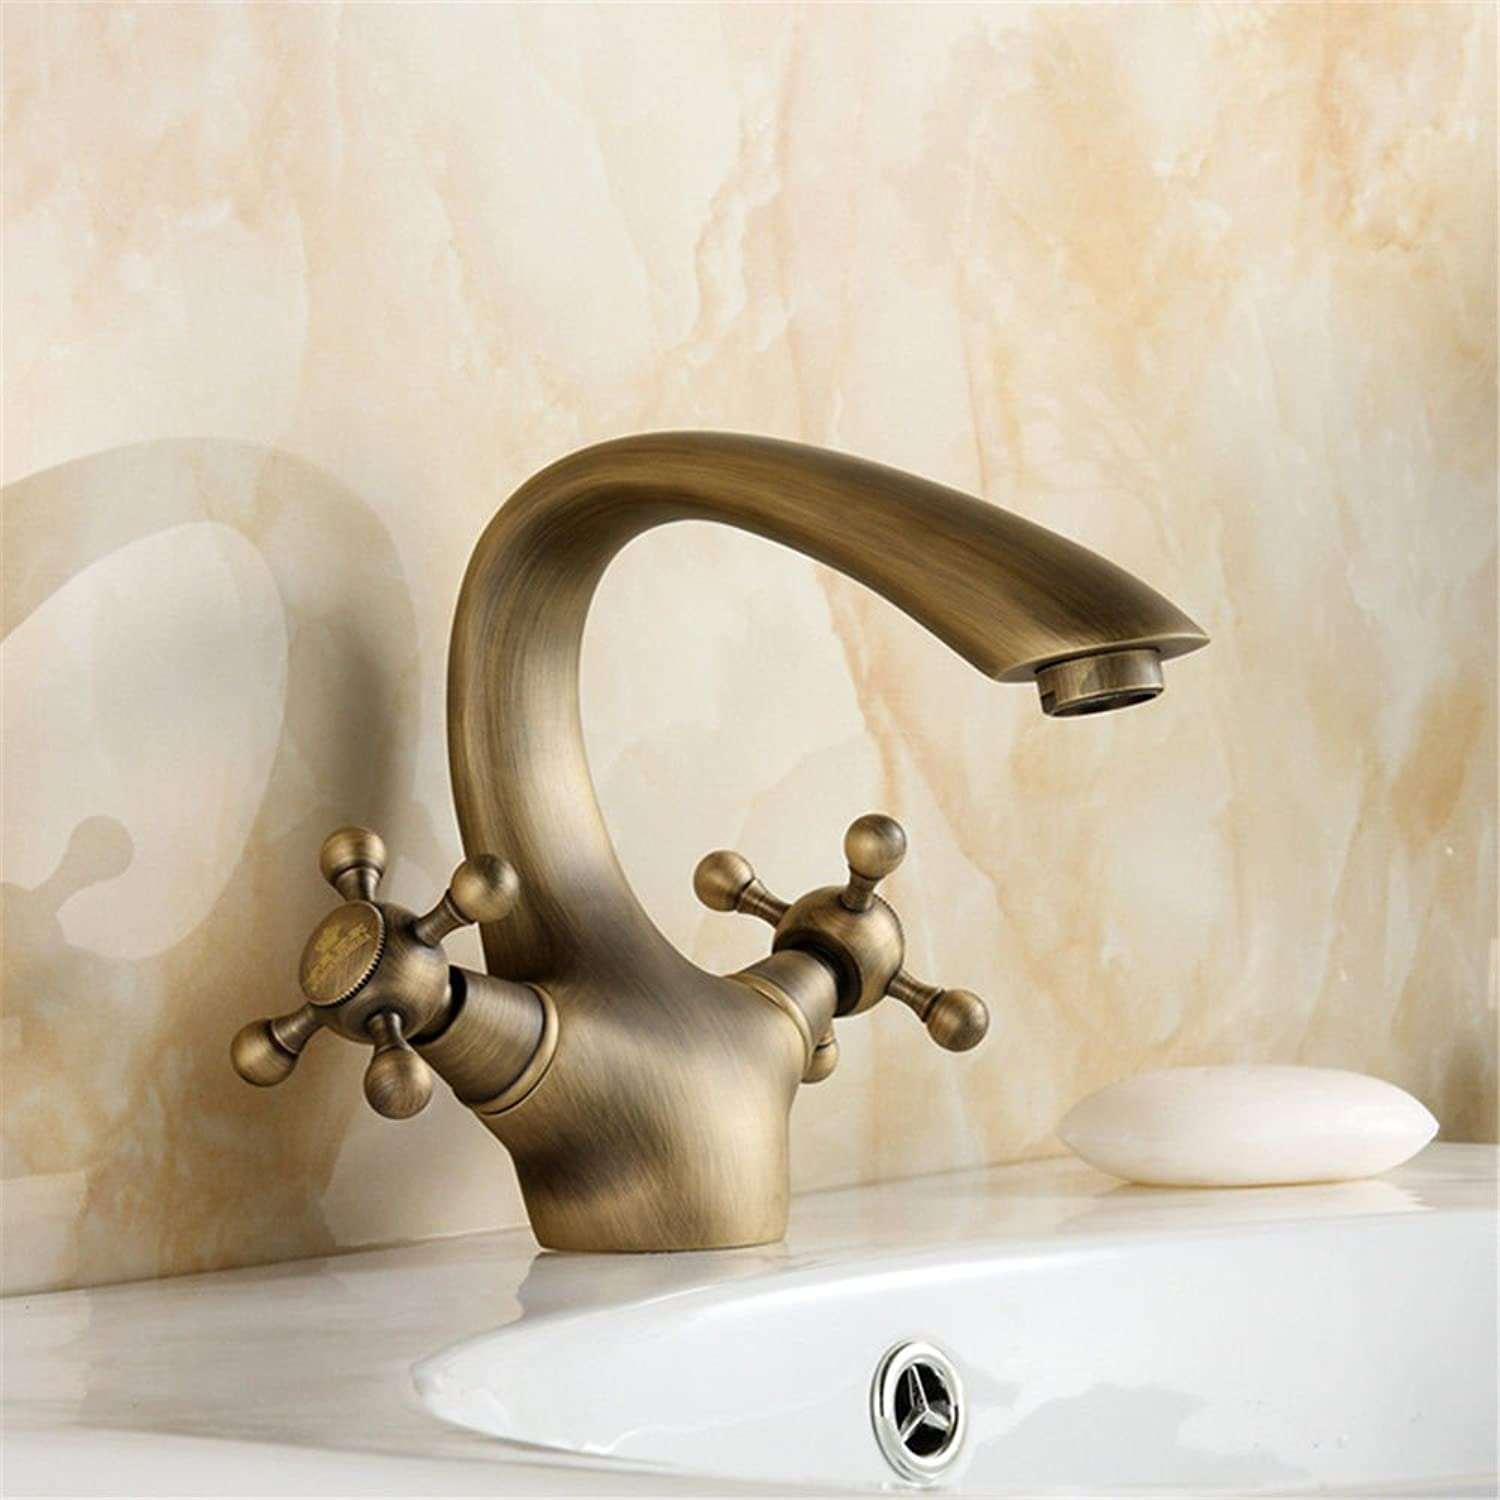 Hlluya Professional Sink Mixer Tap Kitchen Faucet The Antique copper cold water faucet antique table basin basin mixer